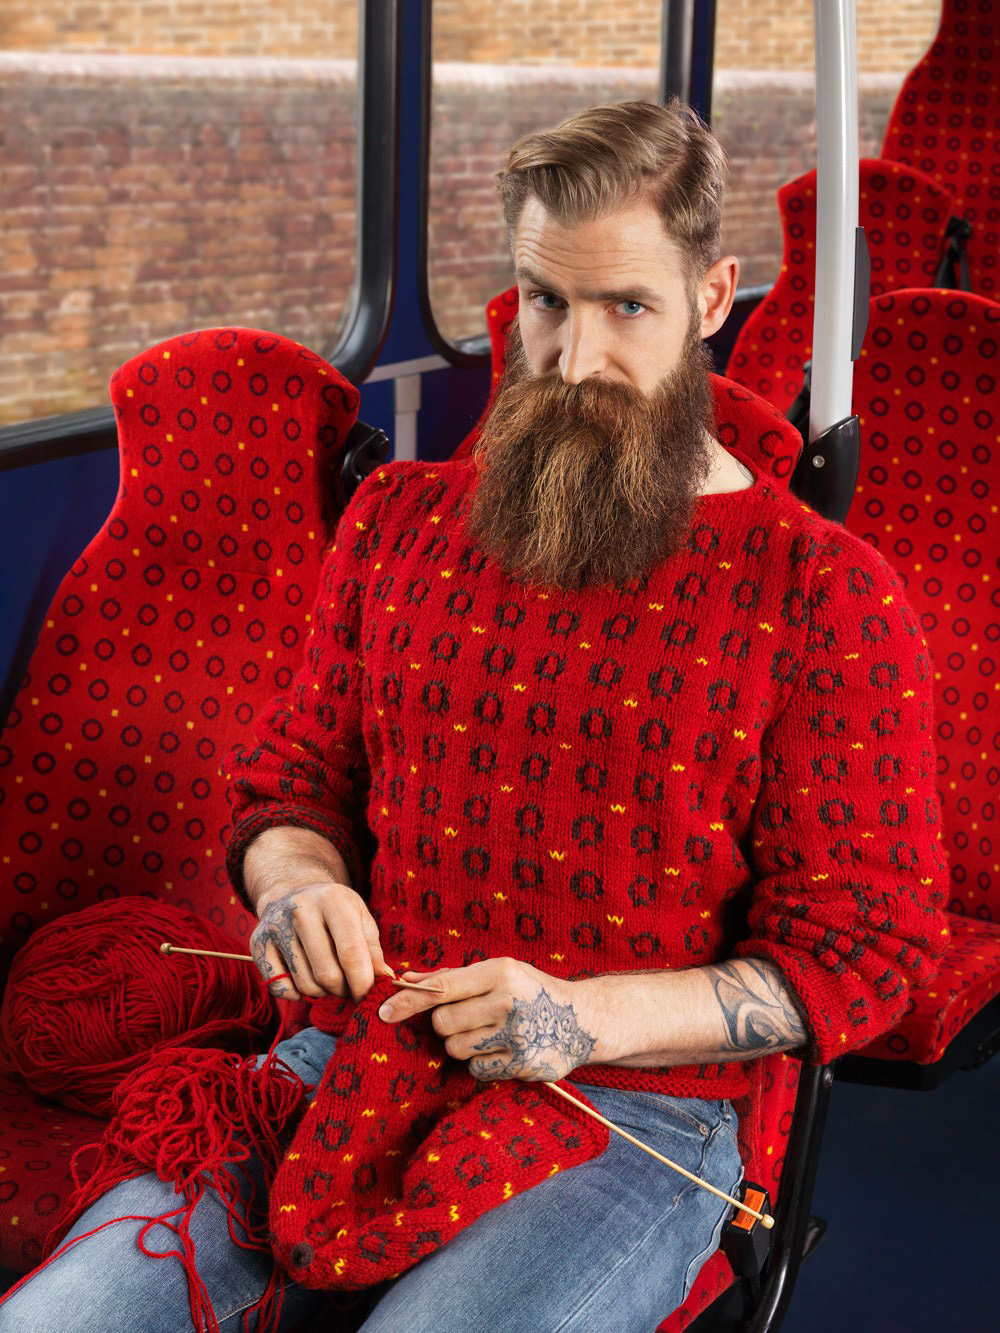 Knitted Camouflage by Joseph Ford   Yellowtrace